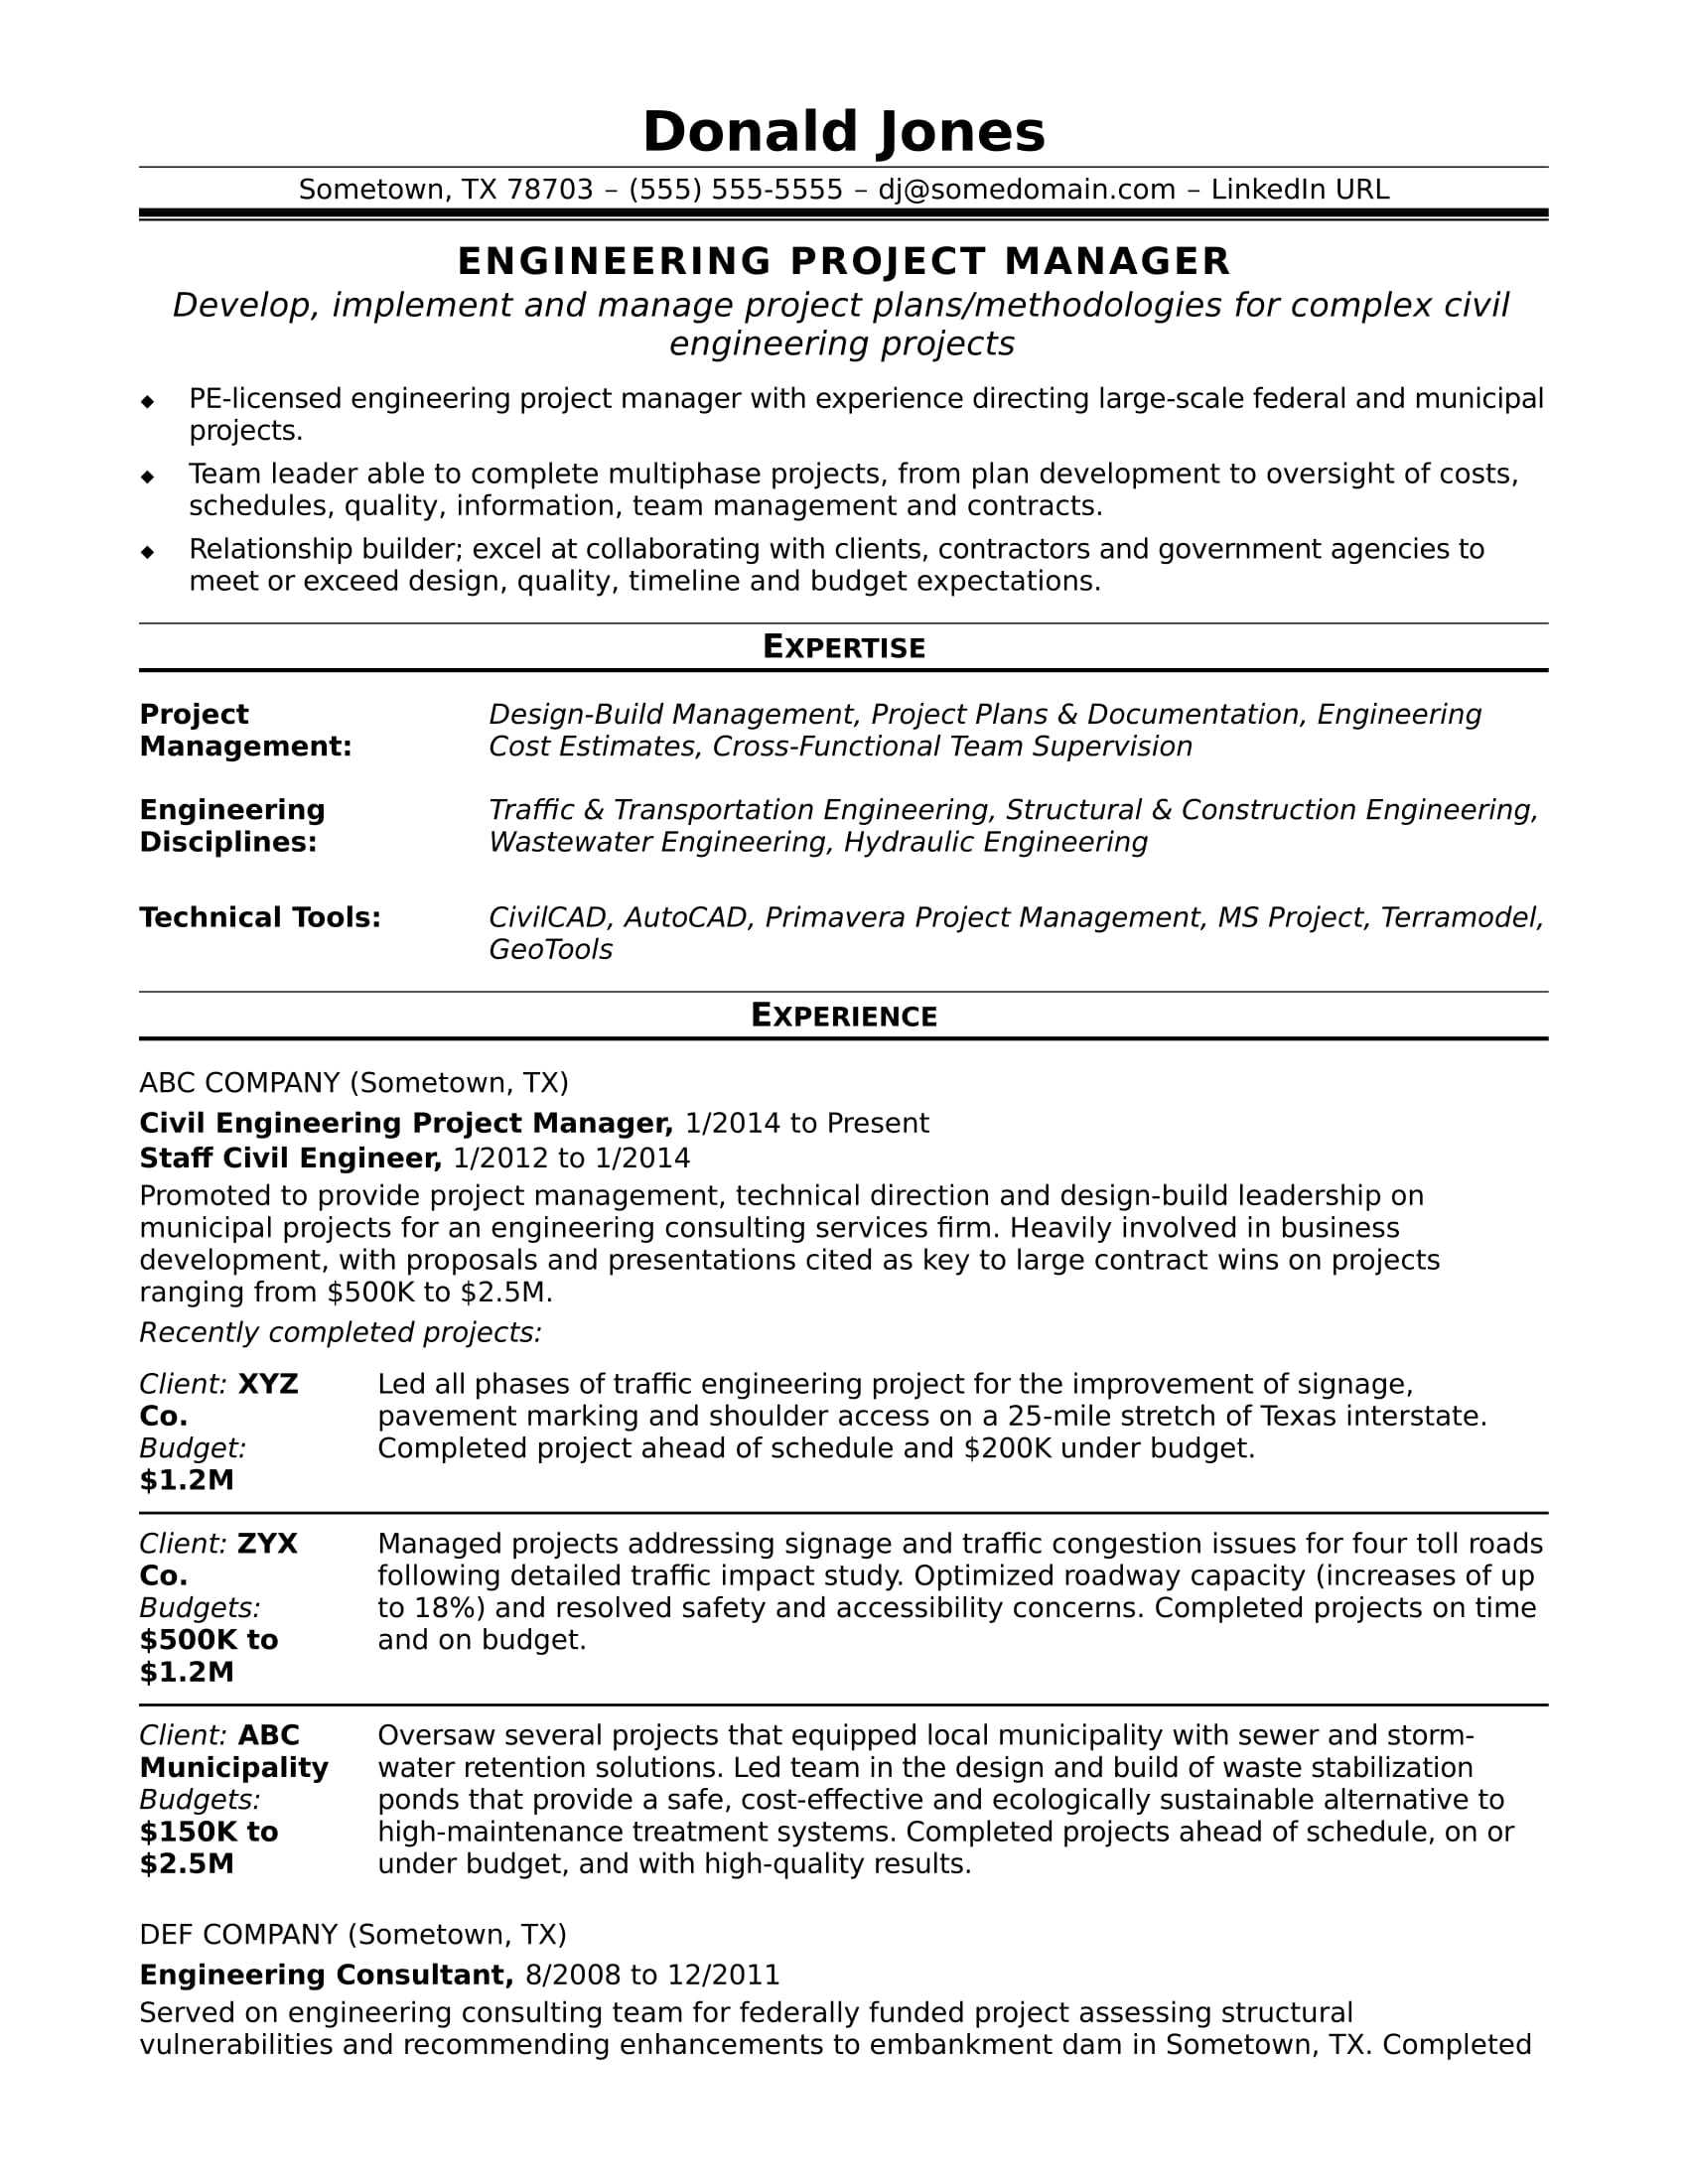 sample resume for a midlevel engineering project manager - Project Management Sample Resume